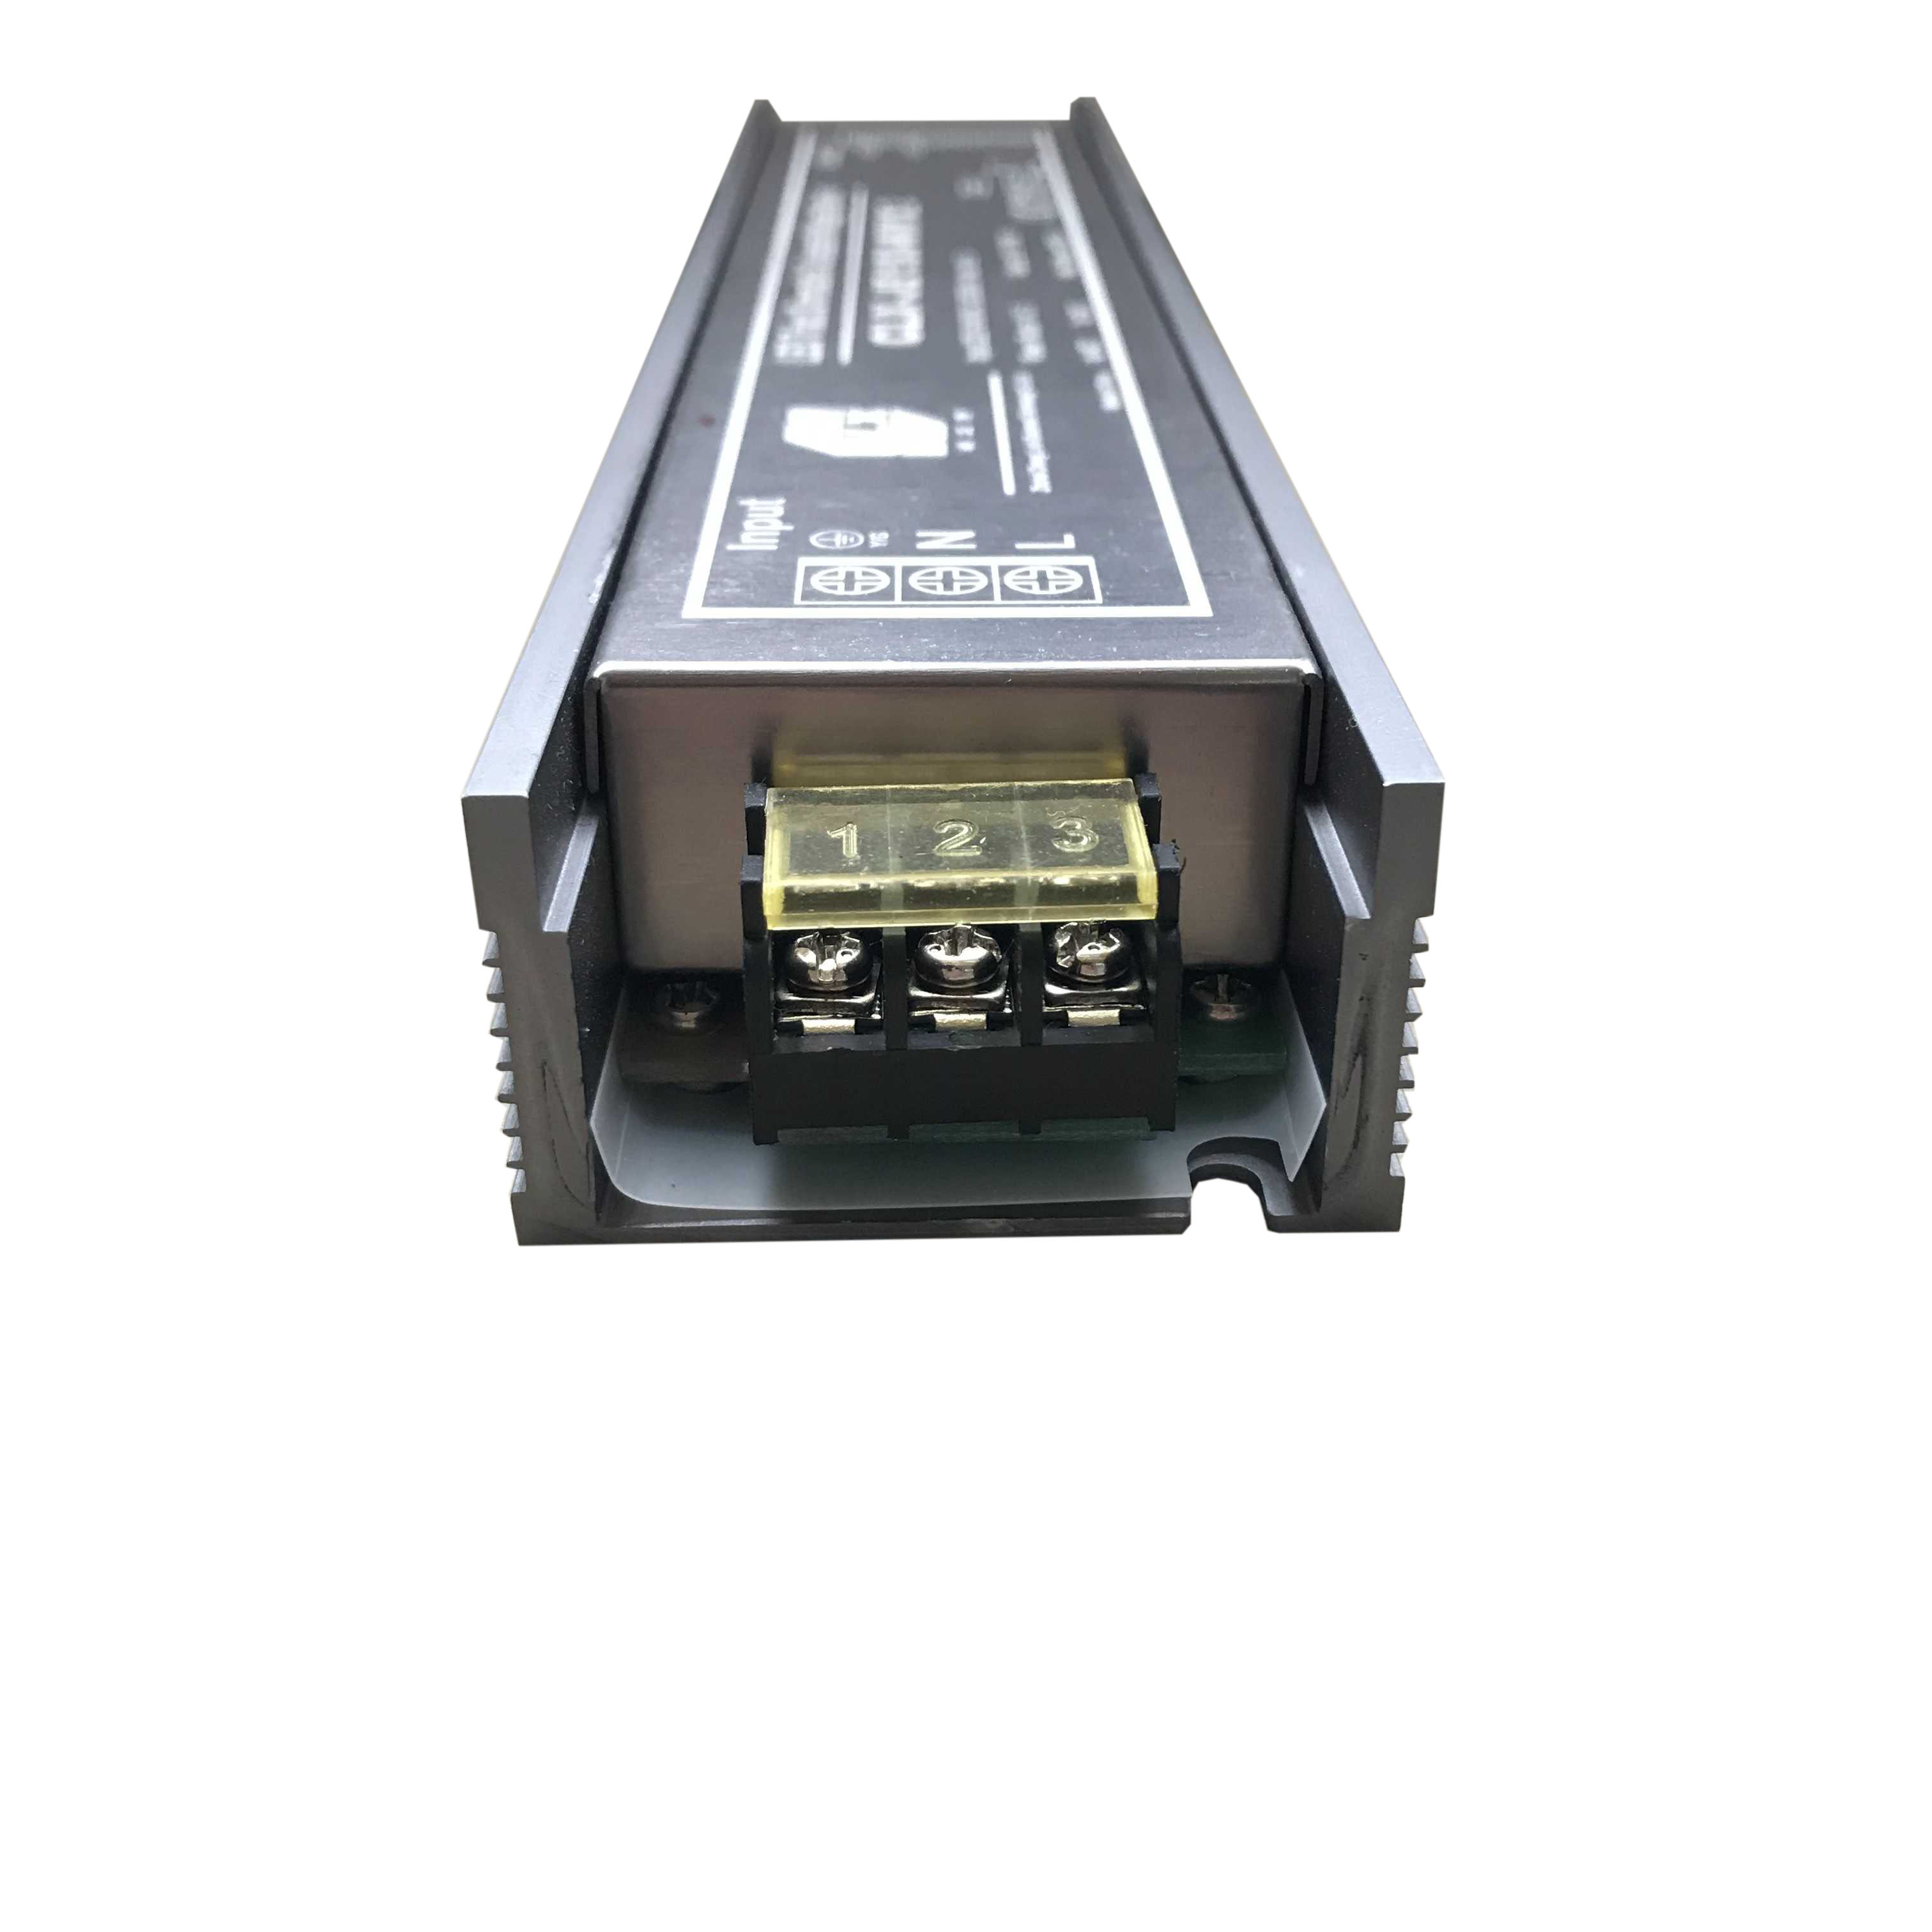 High Power Led Dimming Driver 24v Output No Flick Picture Of Circuits